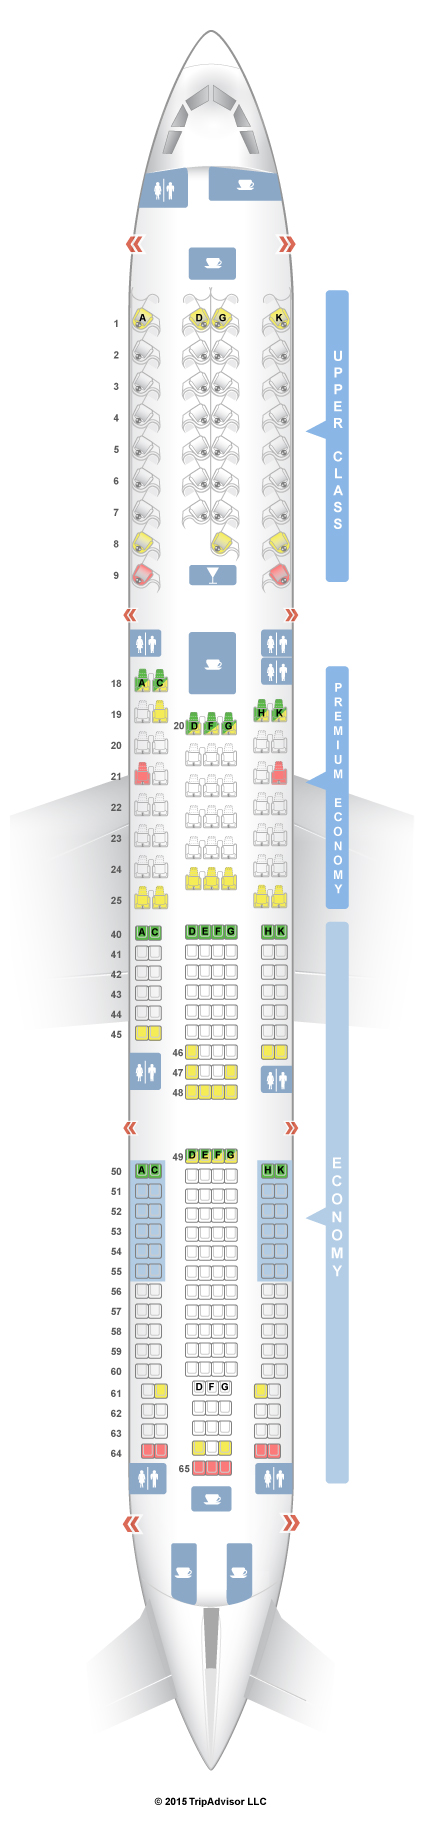 SeatGuru Seat Map Virgin Atlantic Airbus A330-300 (333) Travel in